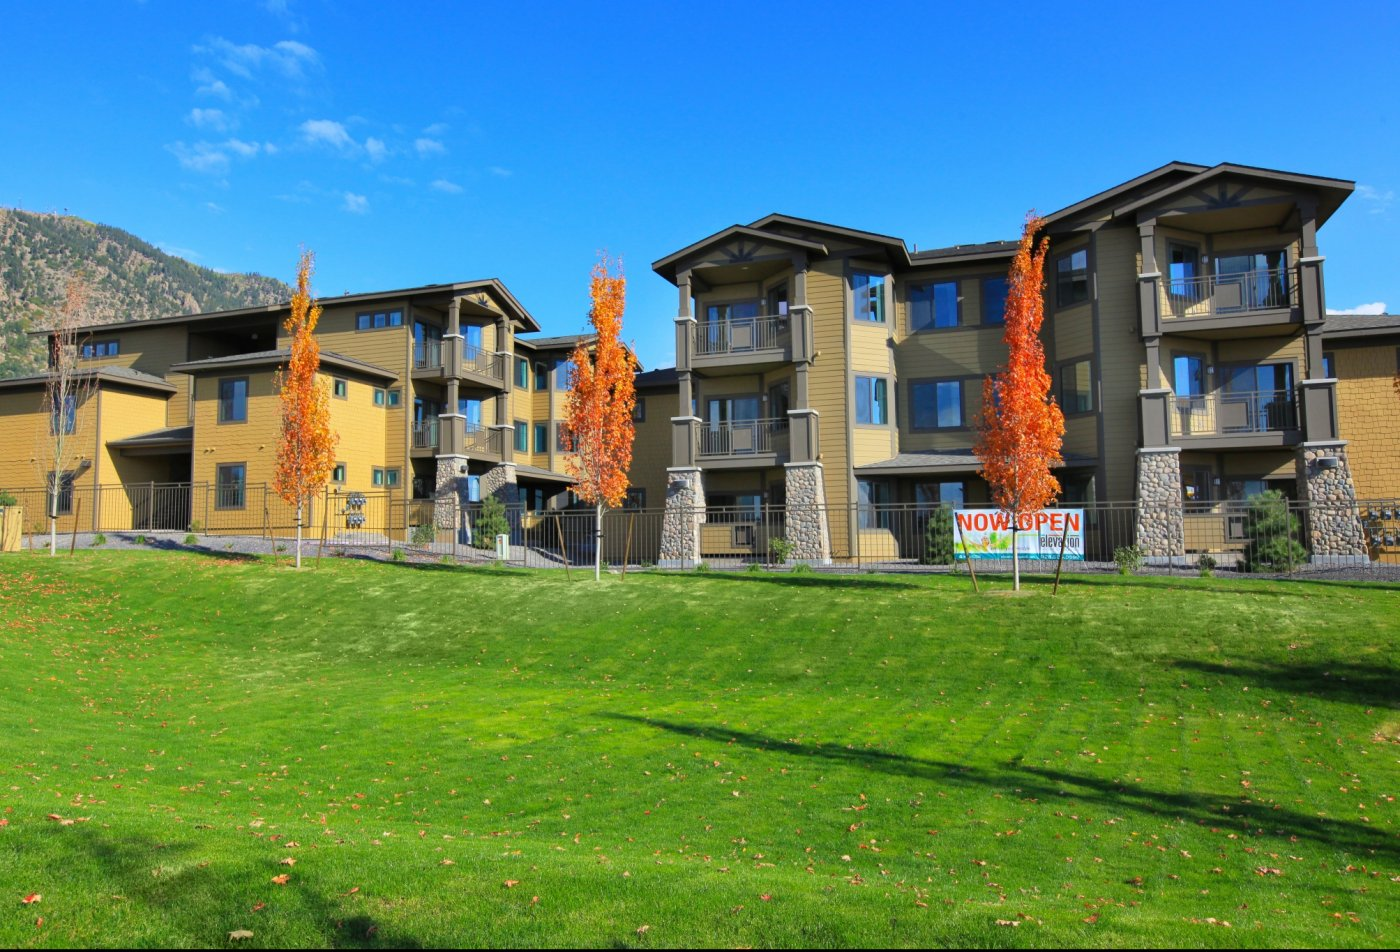 The Elevation Apartments Flagstaff, AZ exterior and landscaping